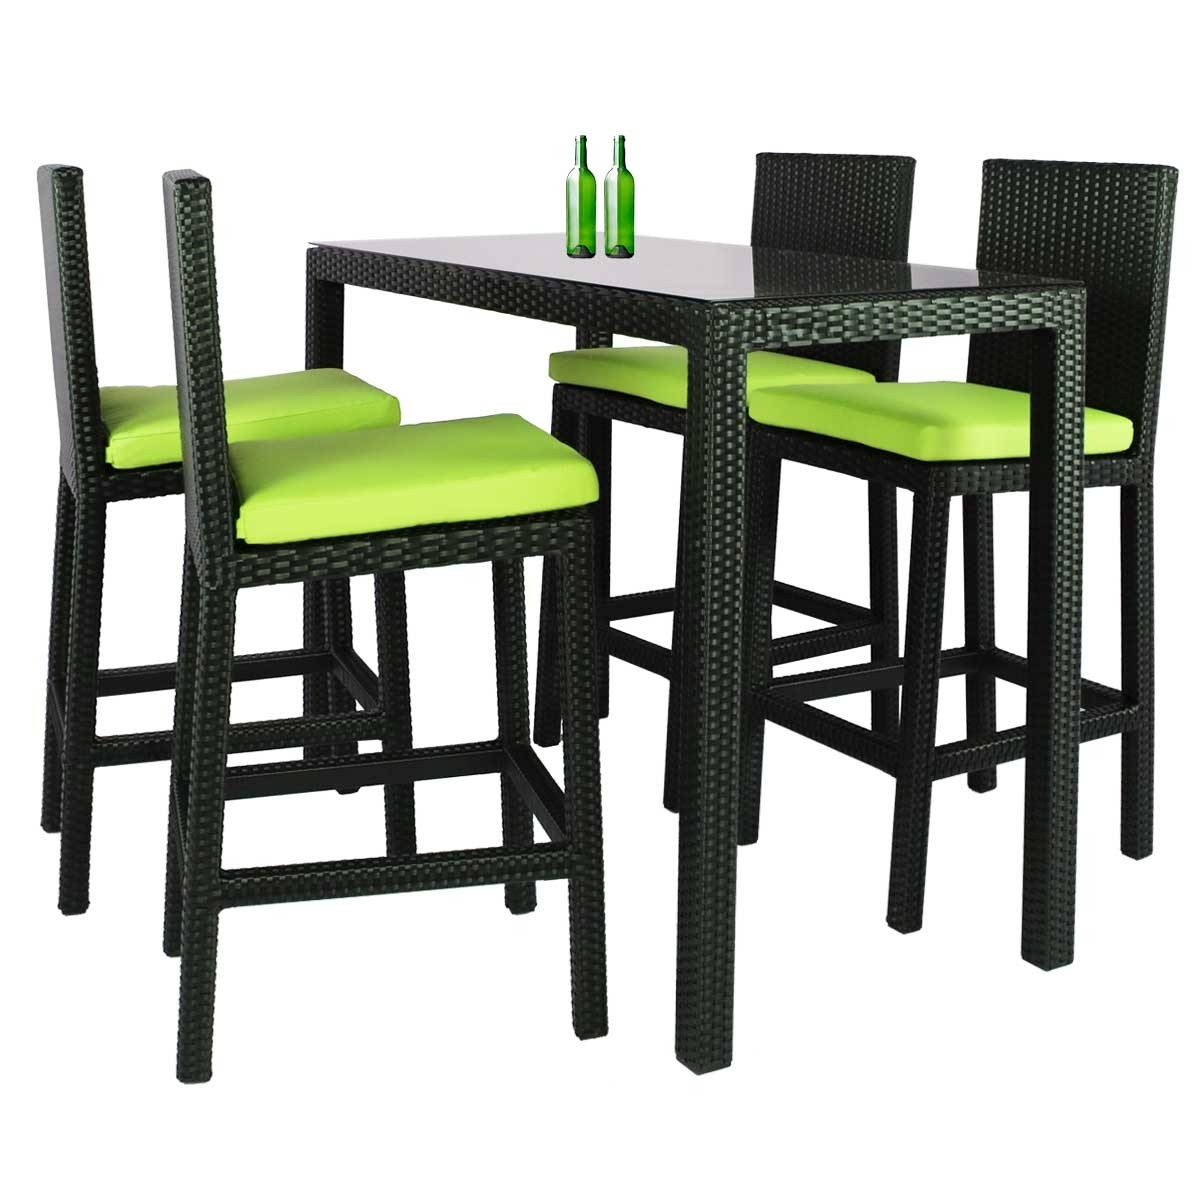 Midas long 4 chair bar set green cushion